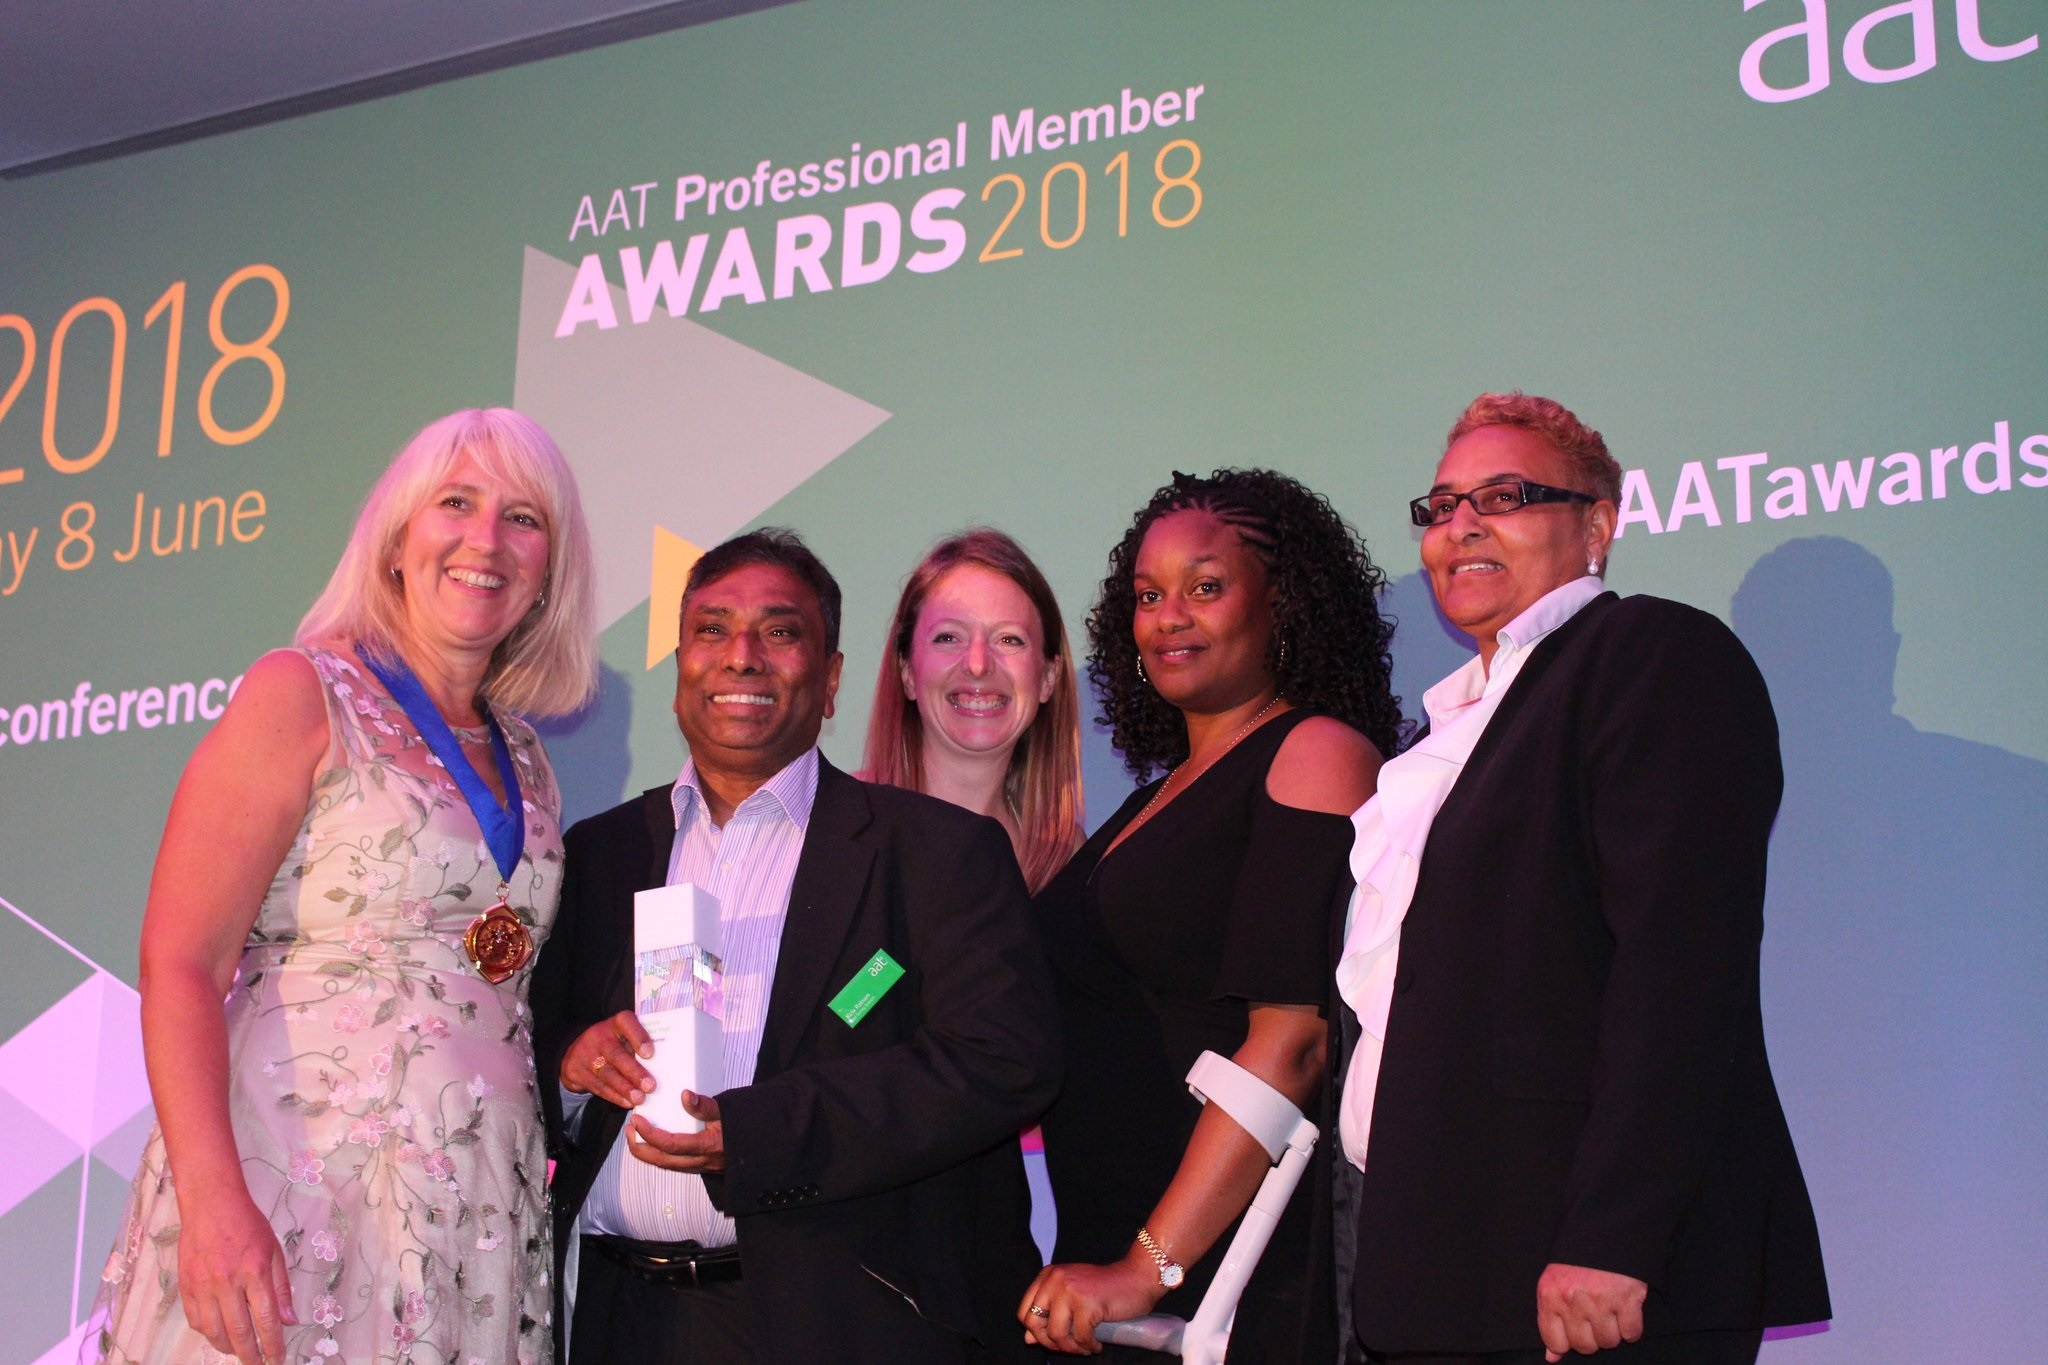 AAT Branch of the Year - East Surrey - collecting their award